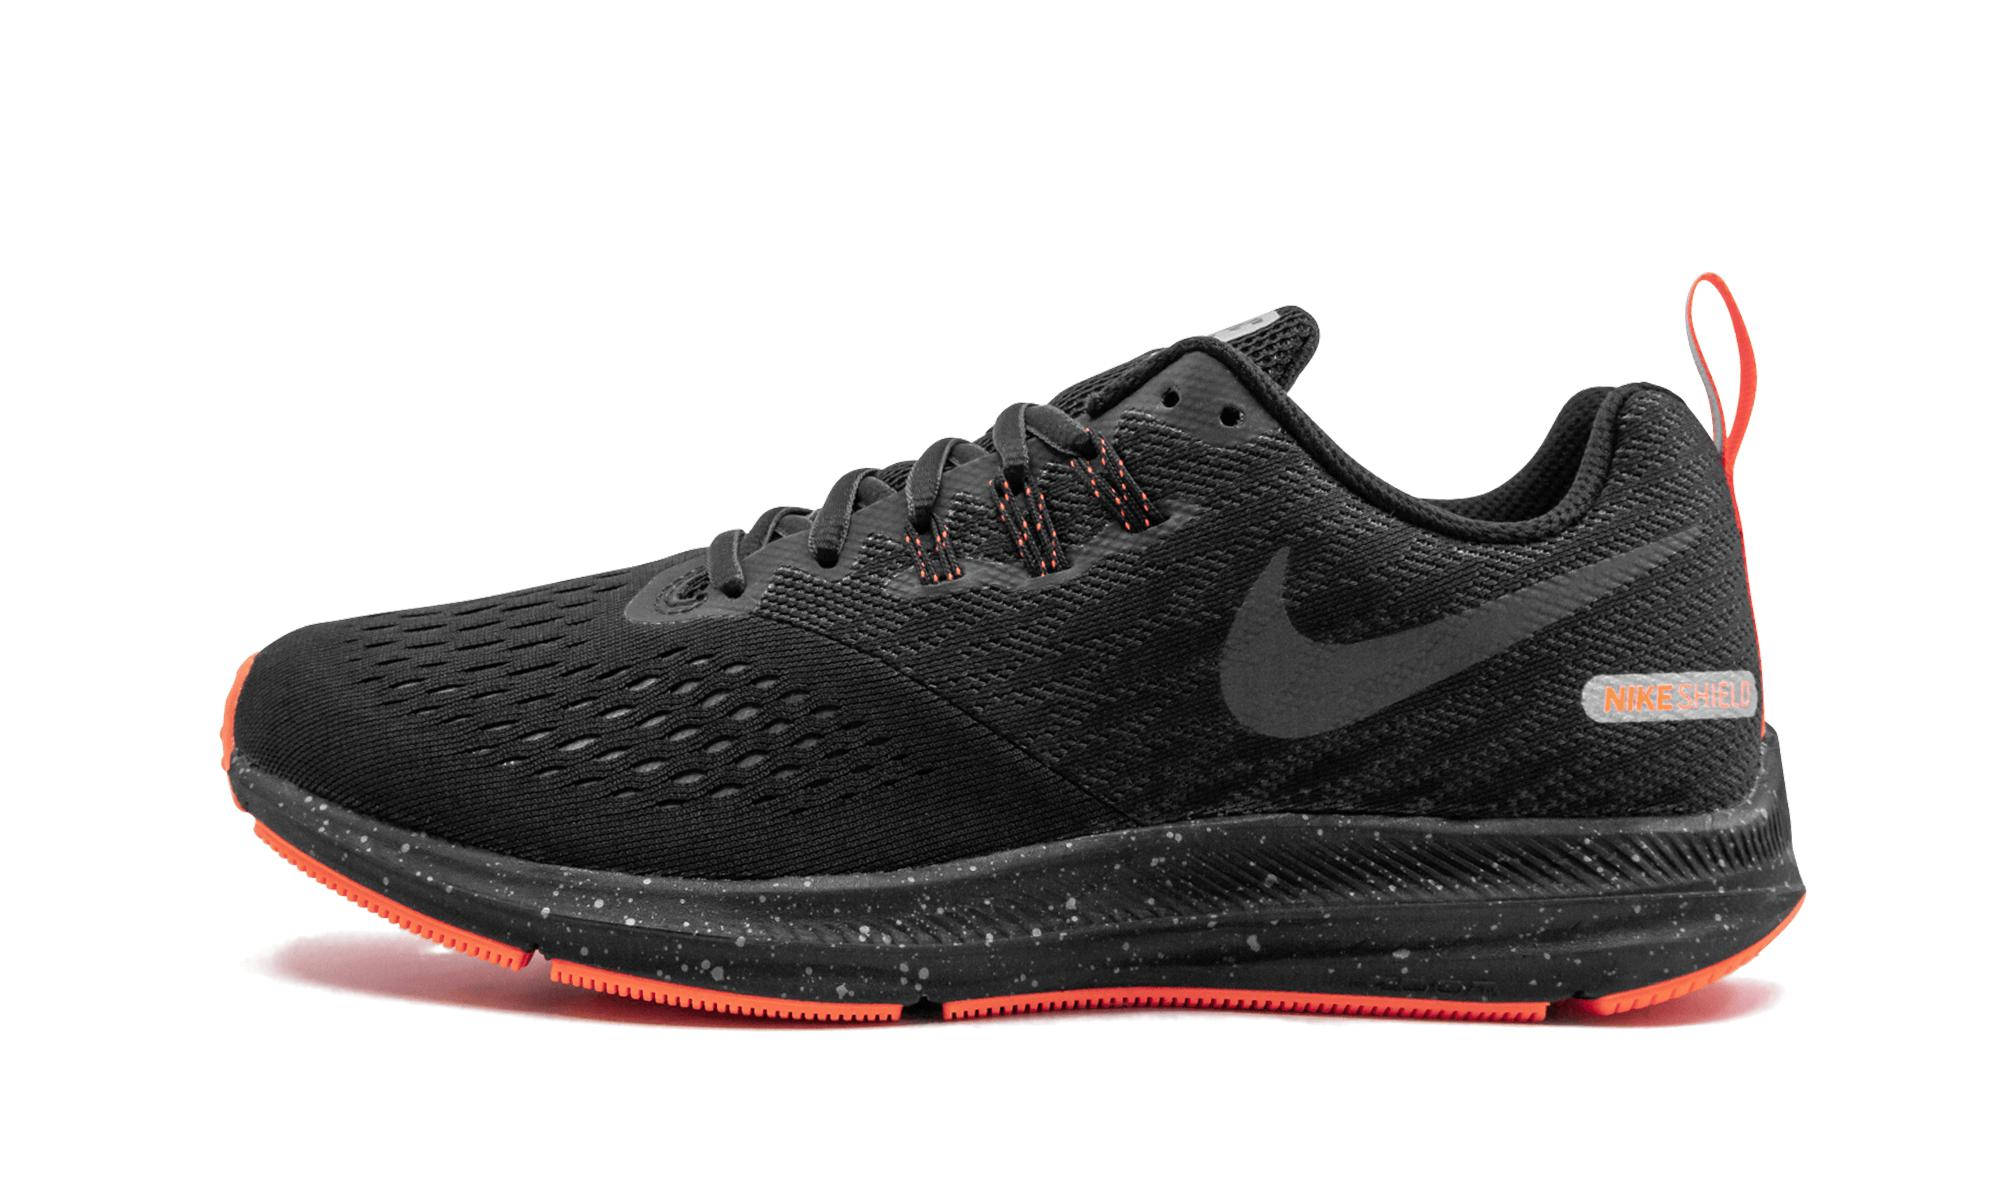 6e2f9c3871c Nike - Black Zoom Winflo 4 Shield for Men - Lyst. View fullscreen